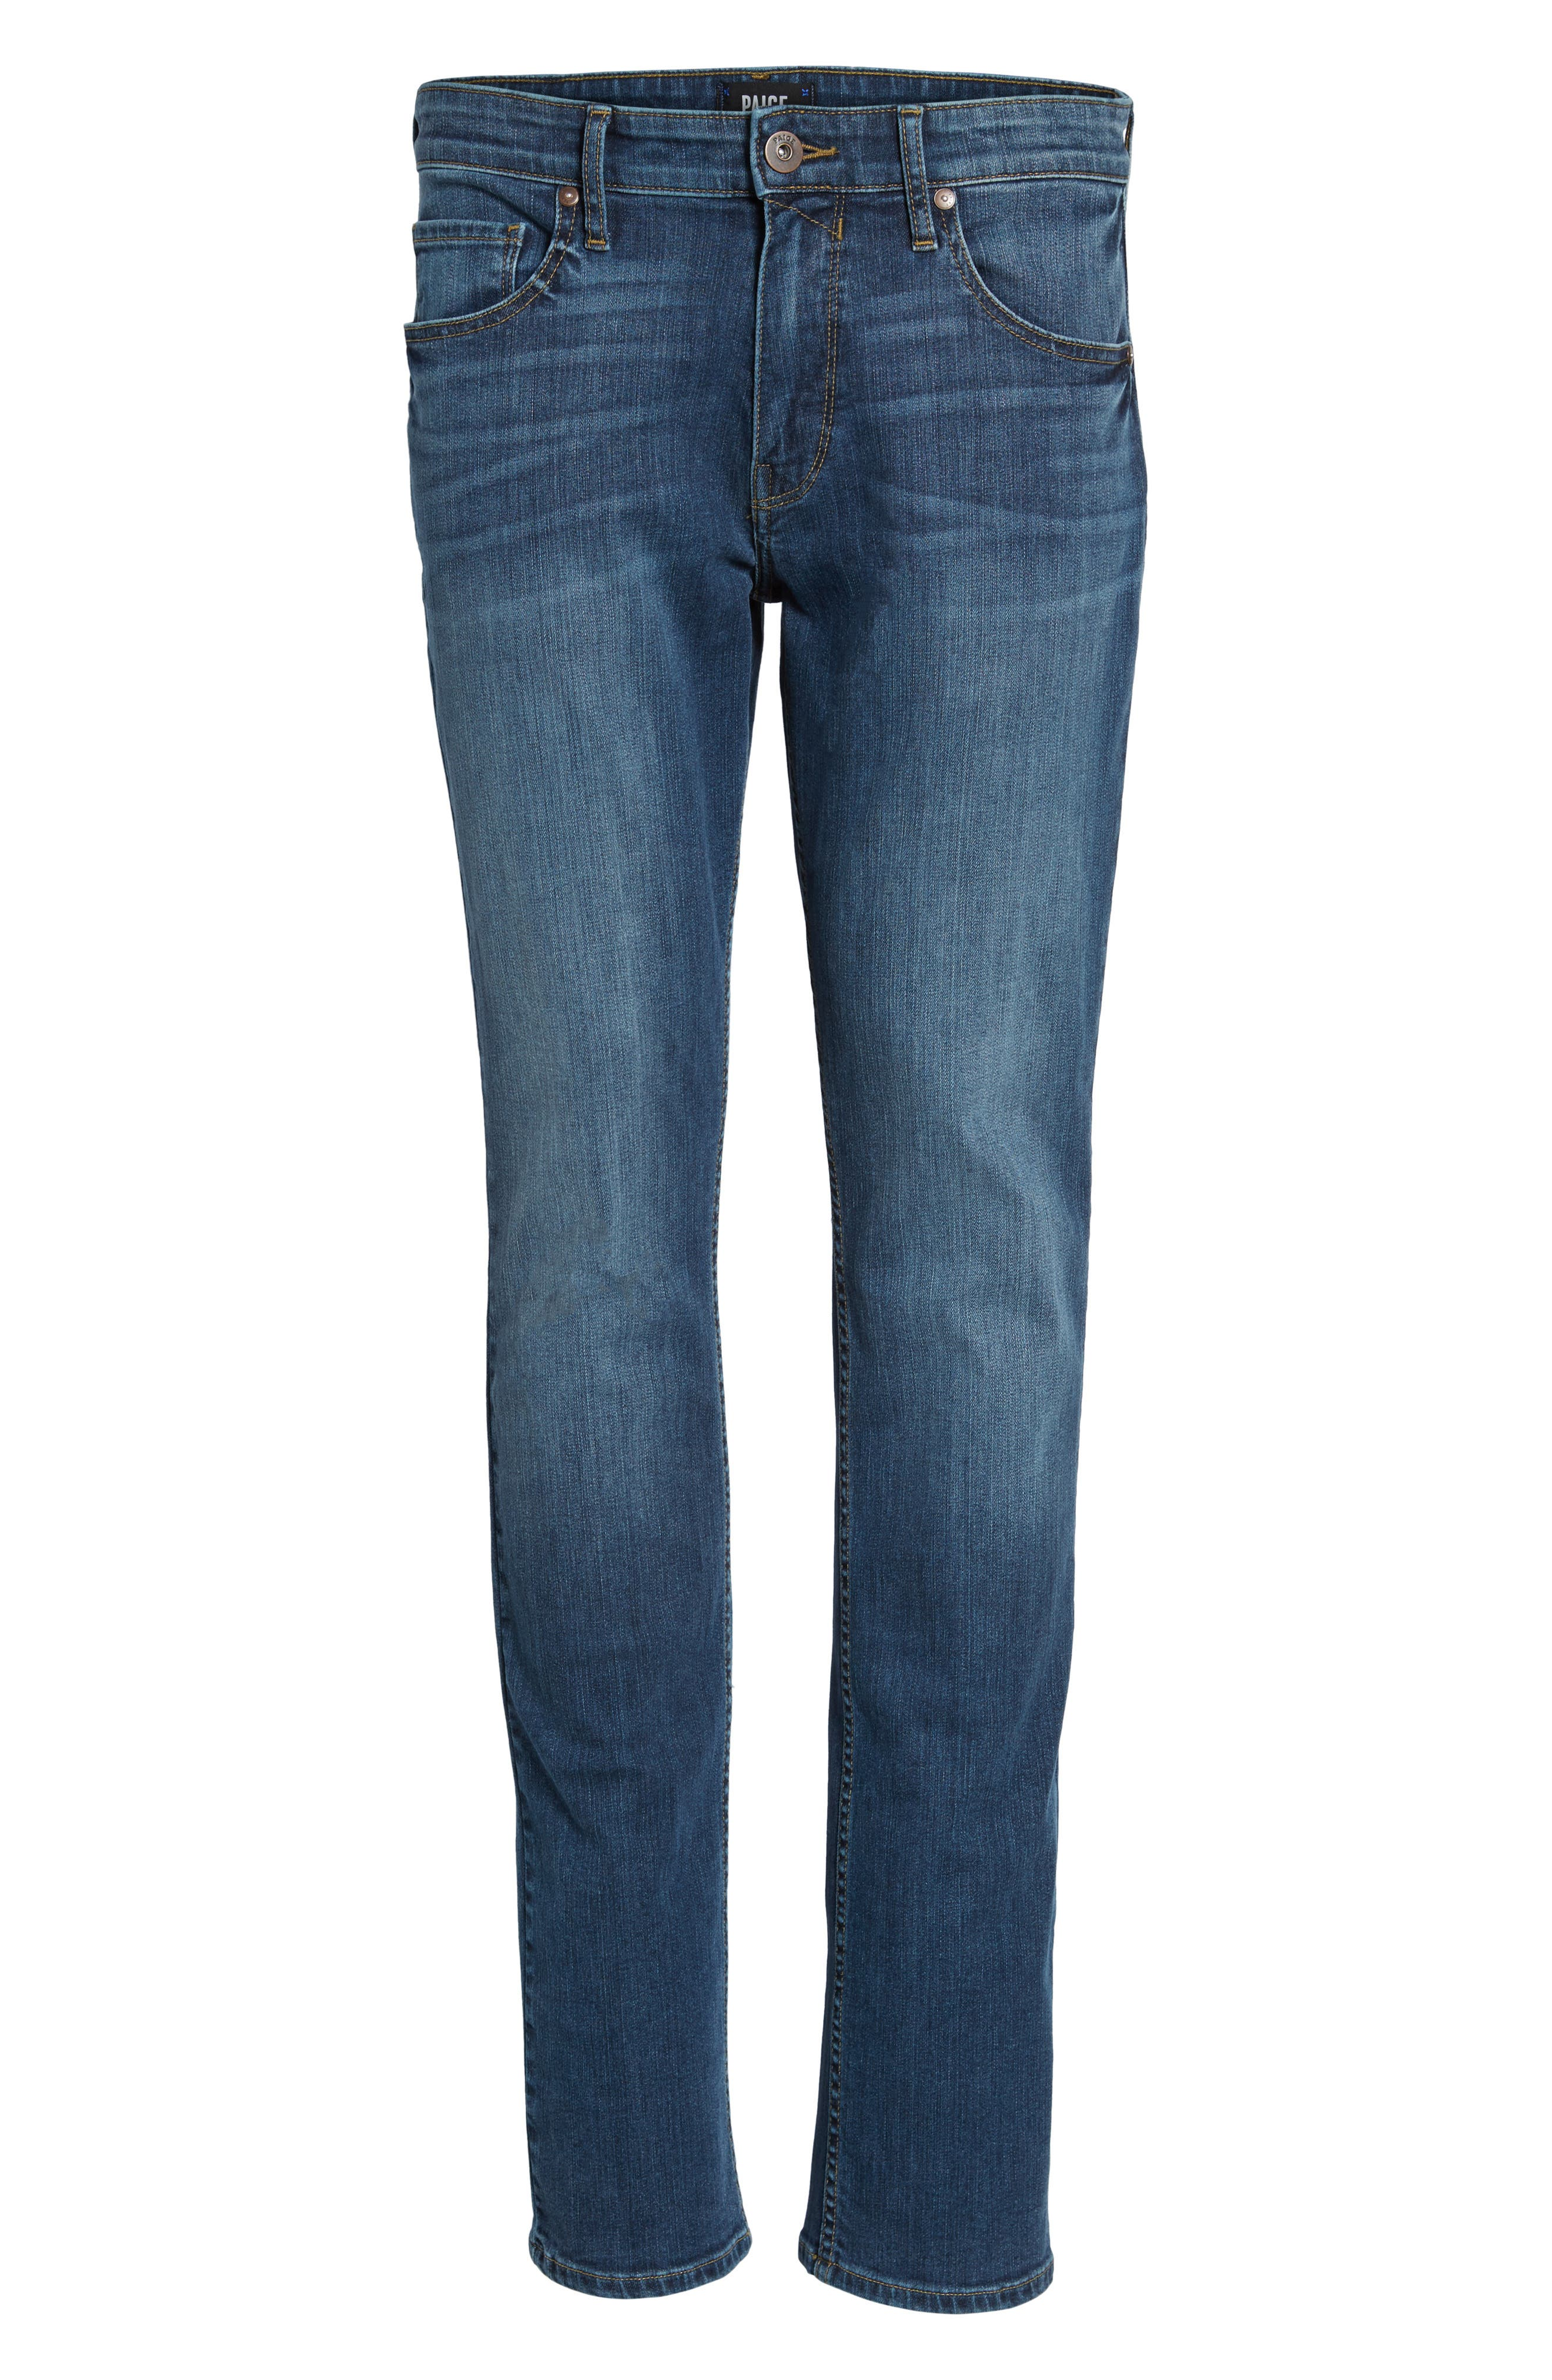 Legacy - Federal Slim Straight Fit Jeans,                             Alternate thumbnail 6, color,                             400